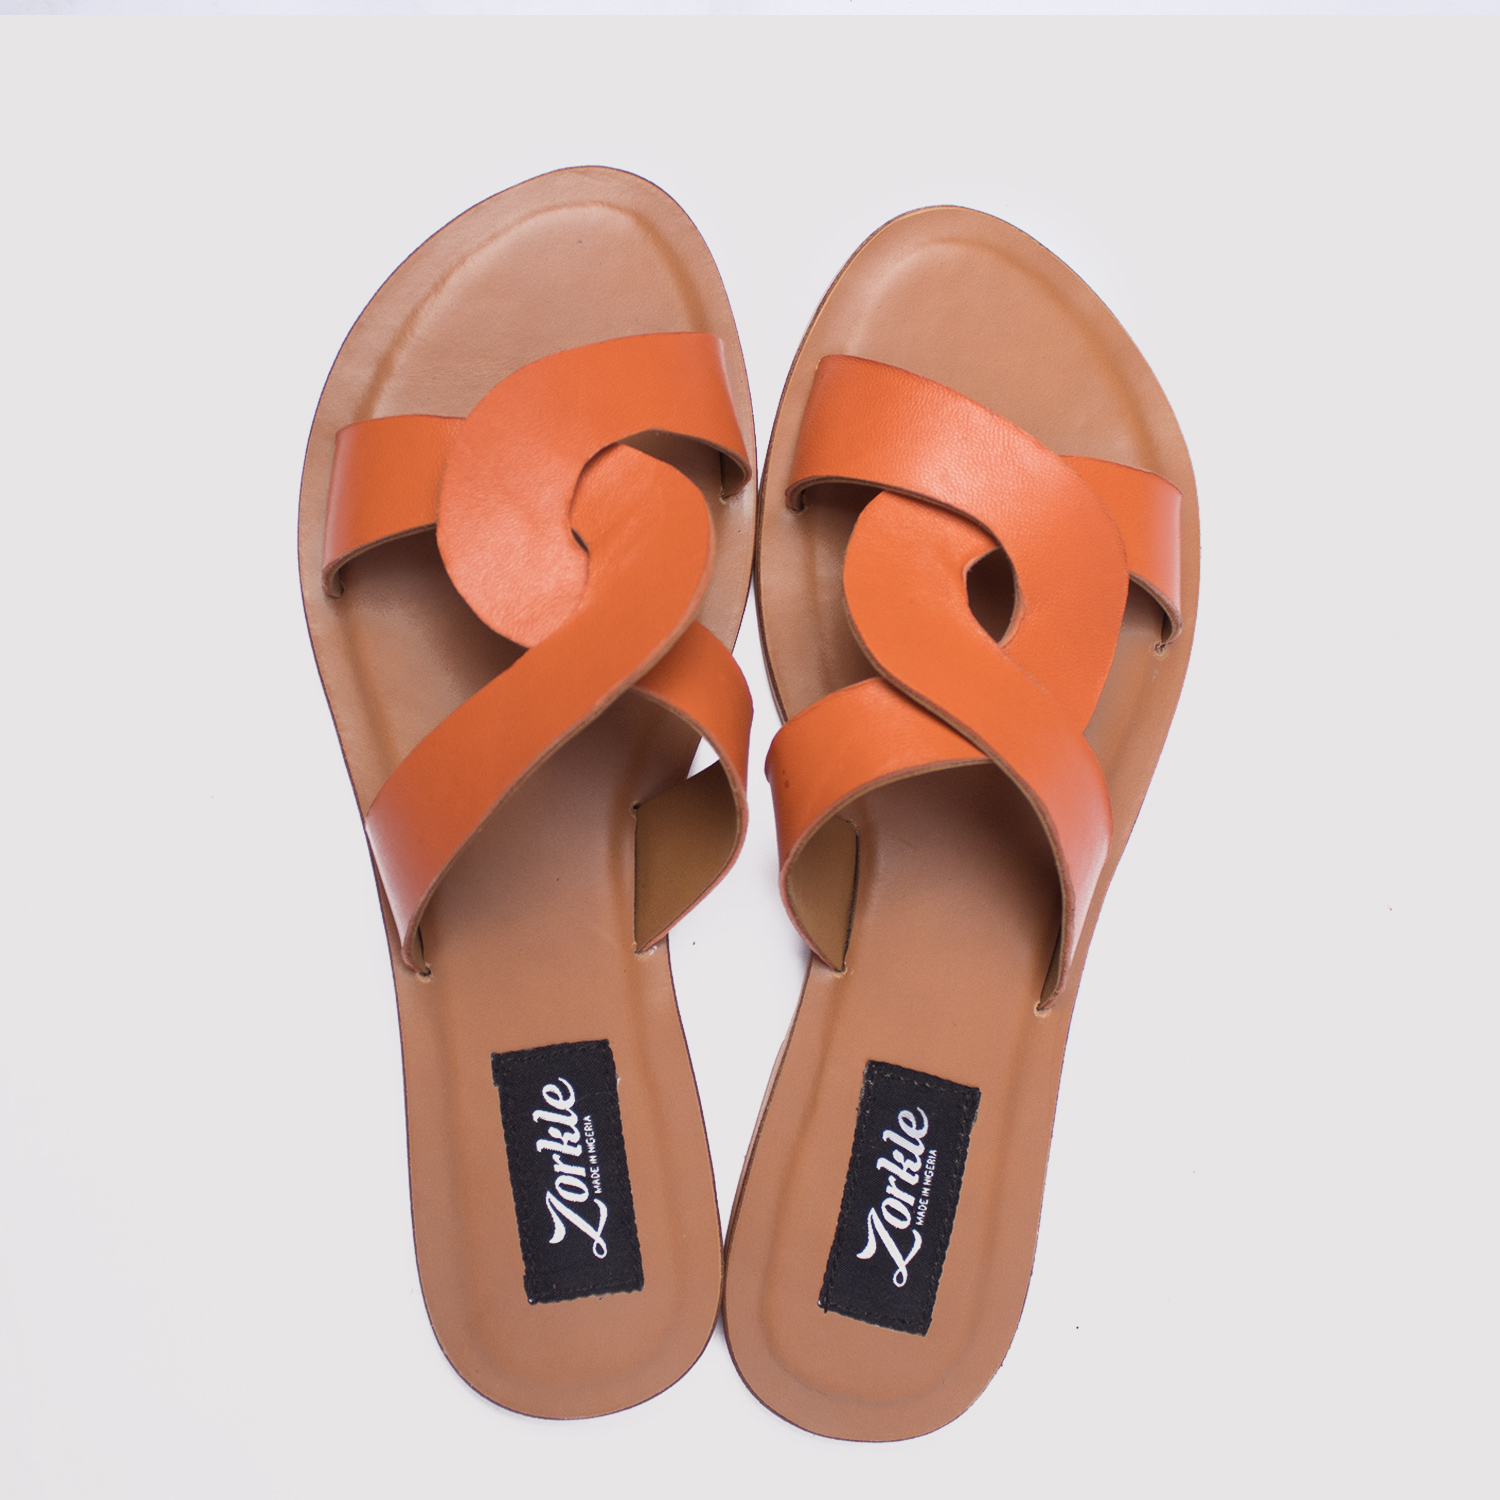 db6c7b1670bd ... CeeCee slippers brown leather zorkle shoes in lagos nigeria